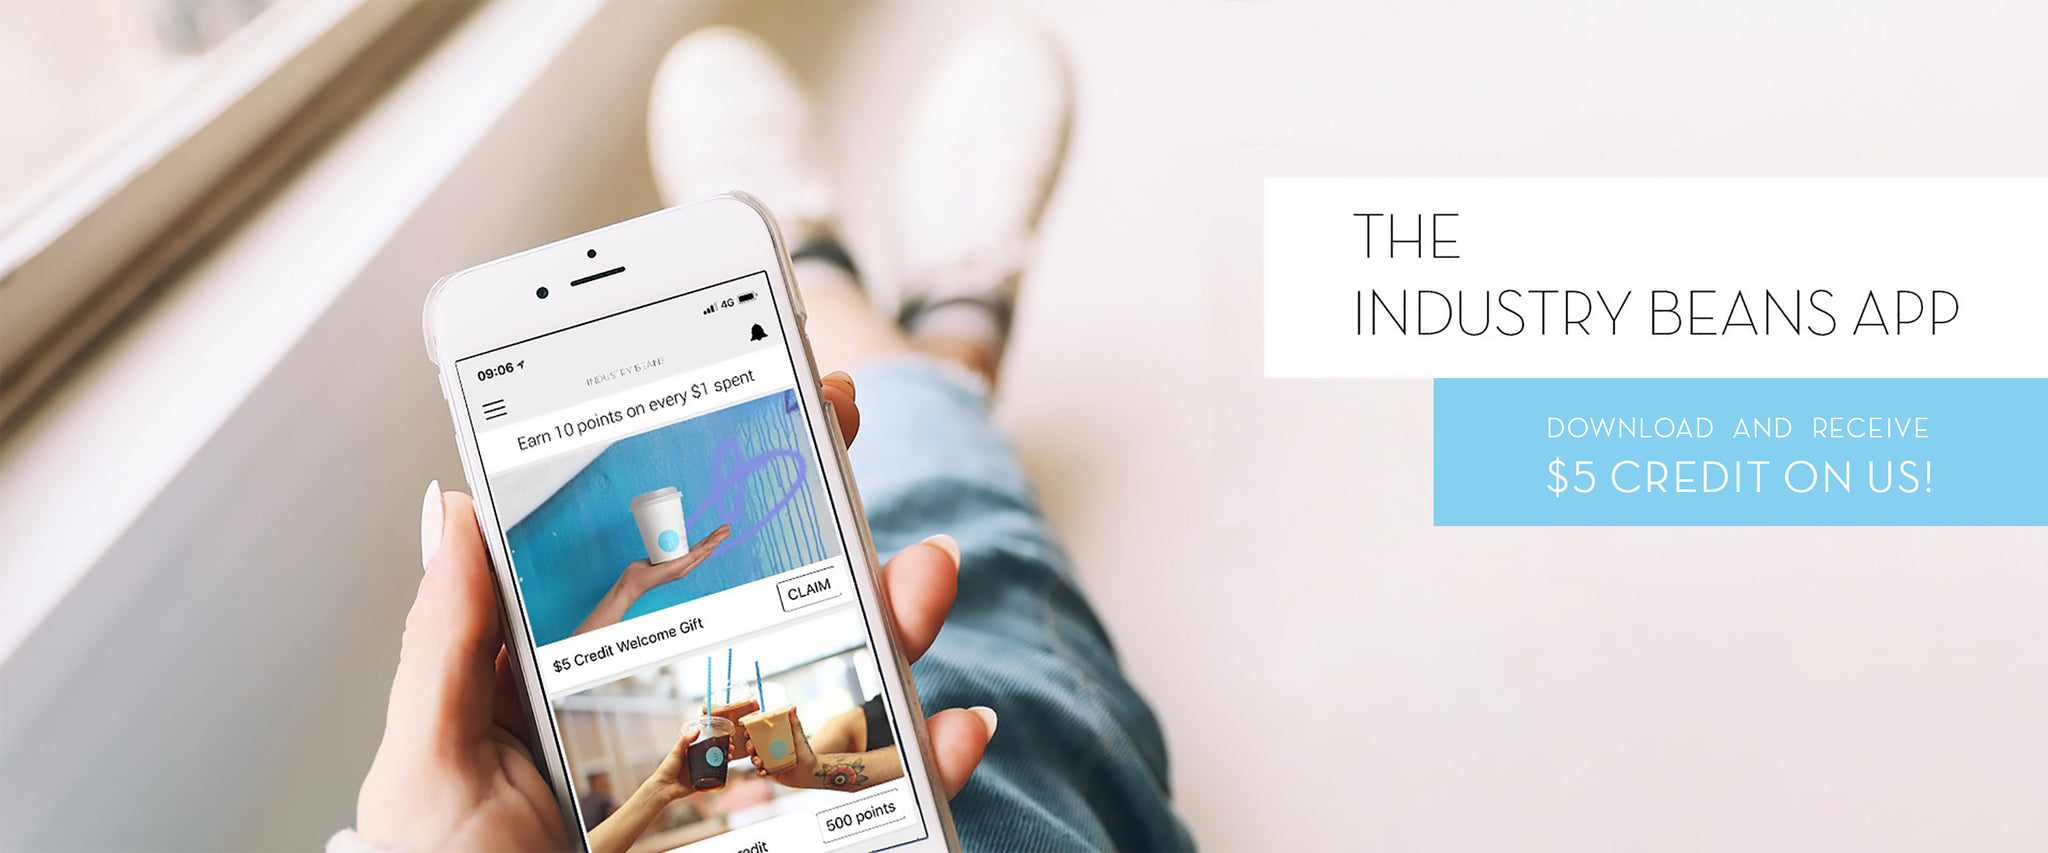 The Industry Beans App